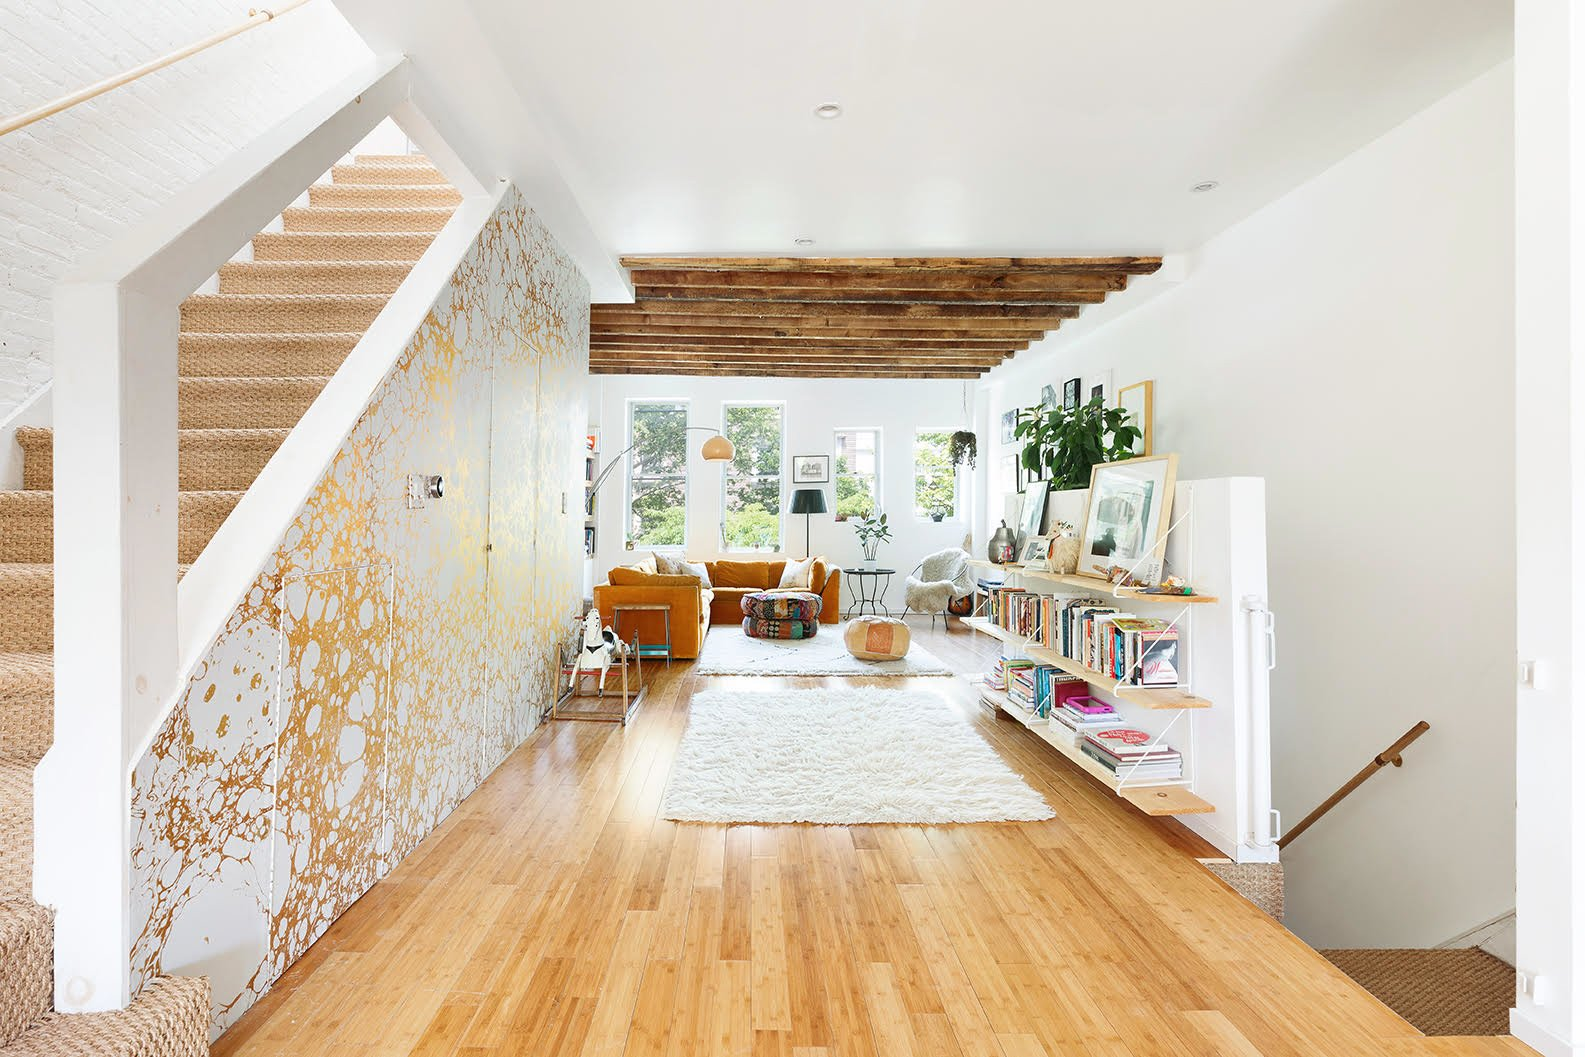 Built in 1905, this Brooklyn townhome underwent a gut renovation that transformed the three-story structure into a bright and airy double duplex. The larger residence occupies the top two floors and features handcrafted, gold-foil wallpaper that contrasts with wooden beams and floors.  Photo 1 of 8 in A Brooklyn Townhouse Reimagined as a Crisp, Loft-Like Duplex Asks $2.75M